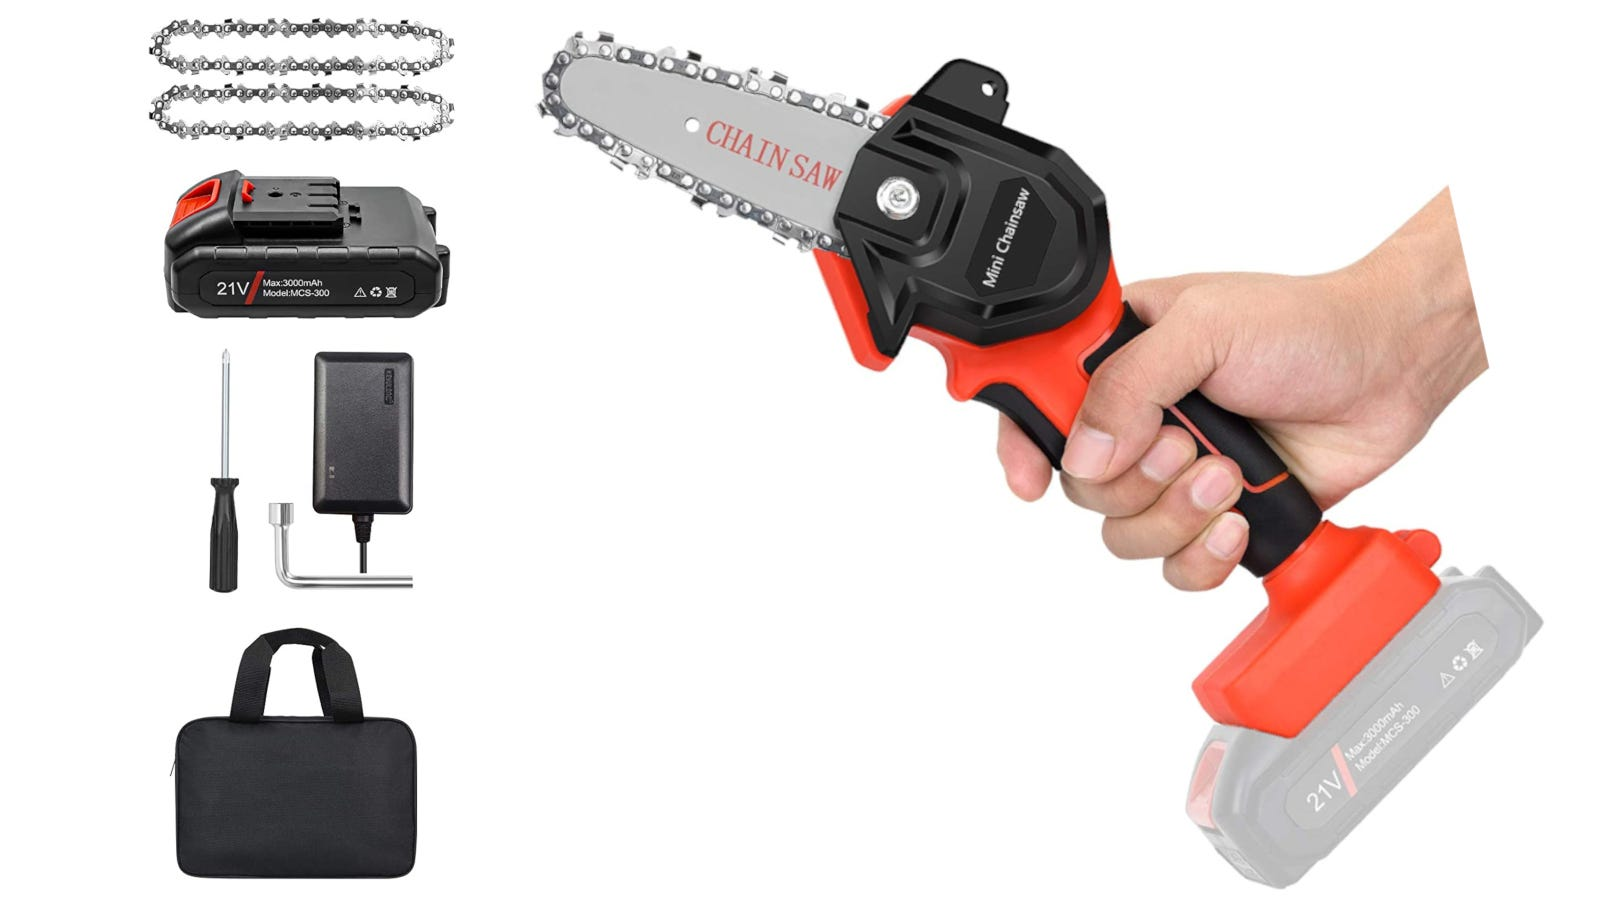 Orange mini-chainsaw with 4-inch blade, single-handed design, and copper wire high-efficiency motor